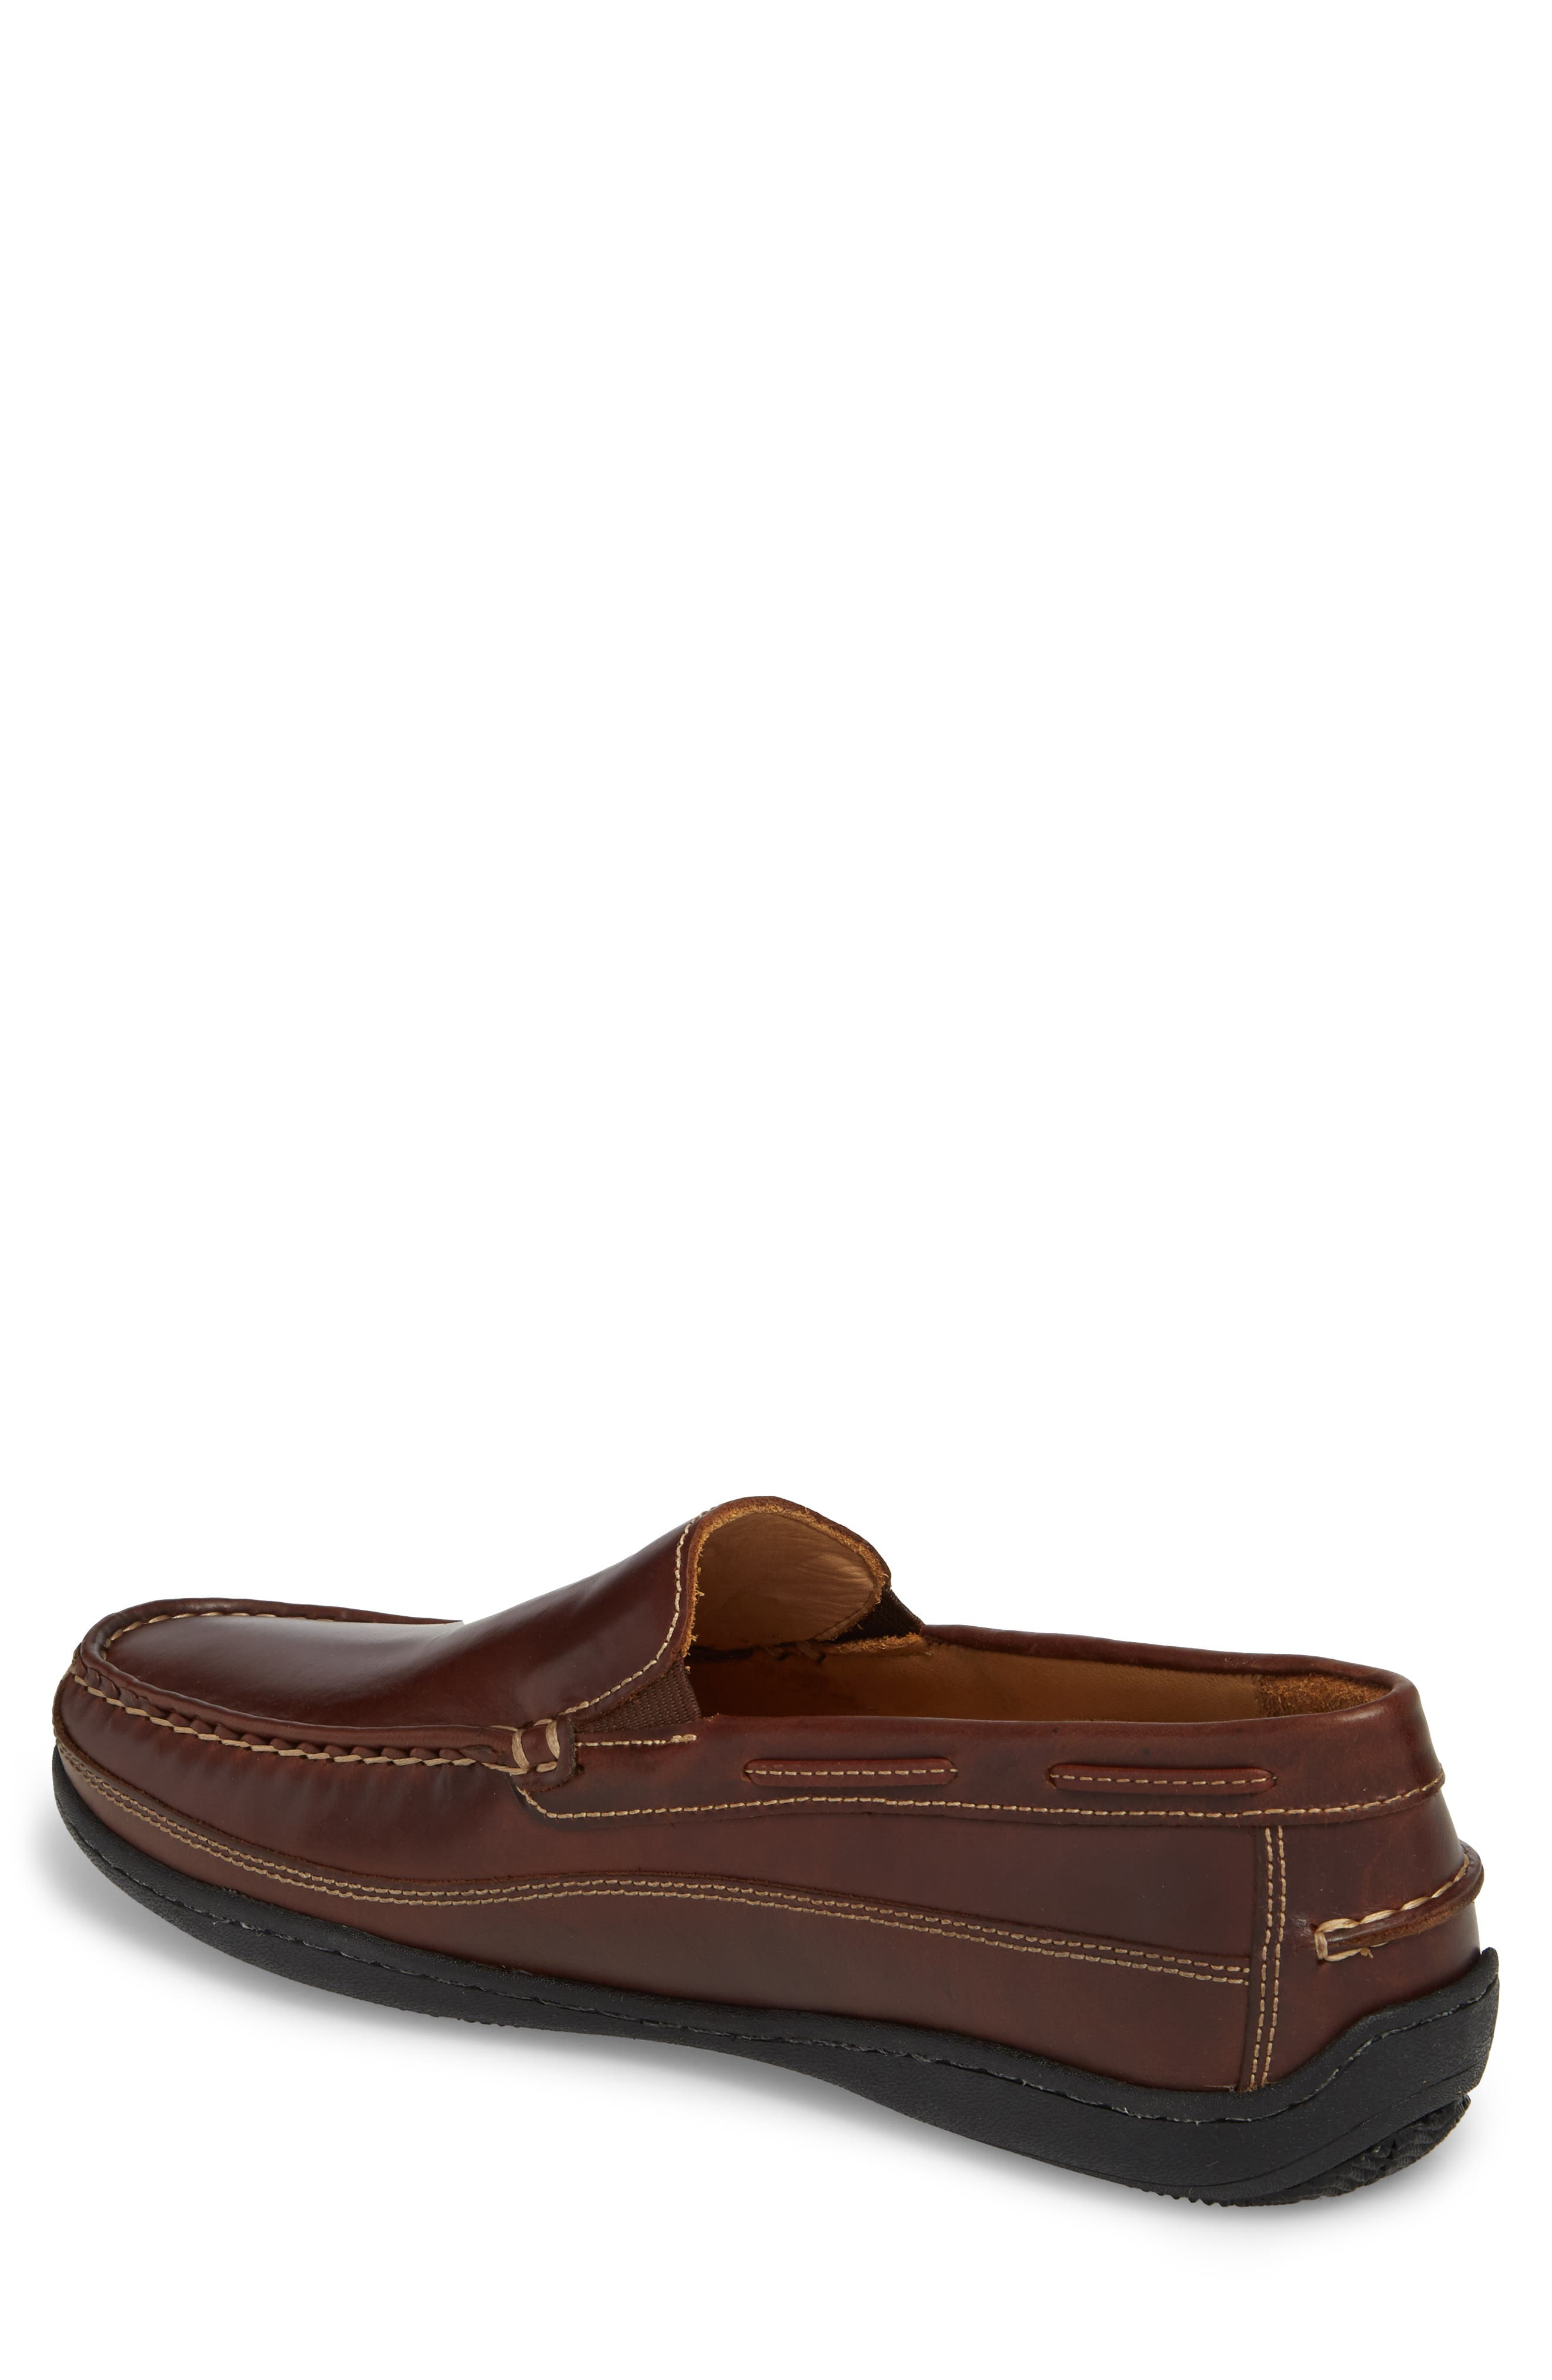 Fowler Moc Toe Loafer,                             Alternate thumbnail 2, color,                             Mahogany Leather